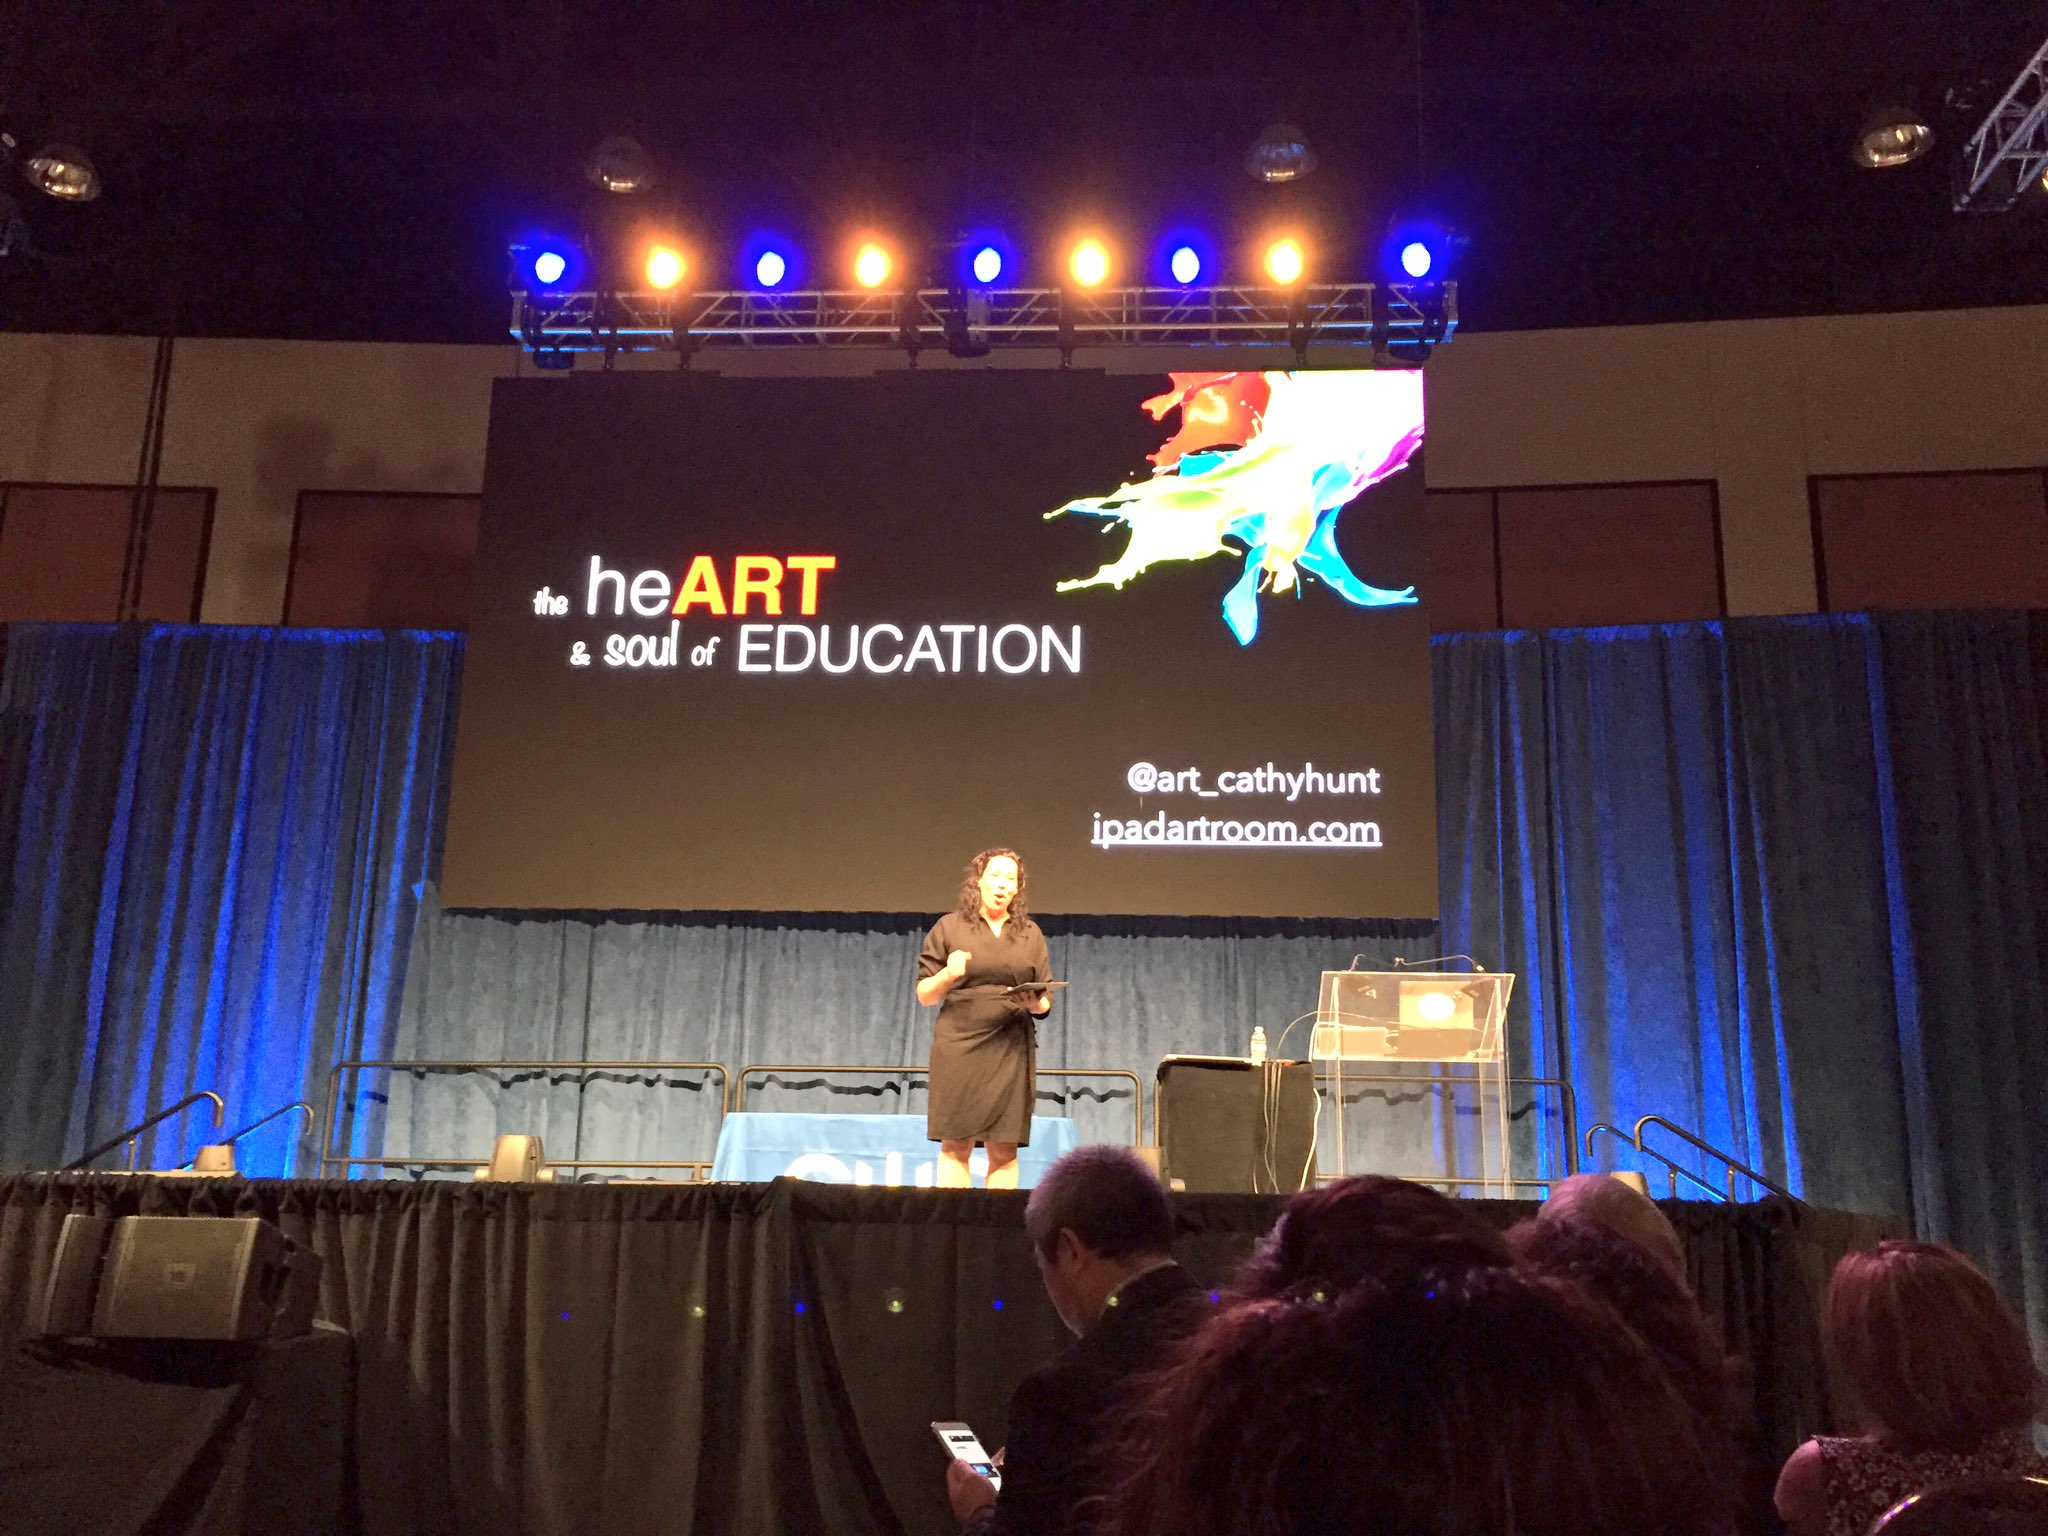 So looking forward to hearing @art_cathyhunt #CUE17 https://t.co/E5Rnj53taQ